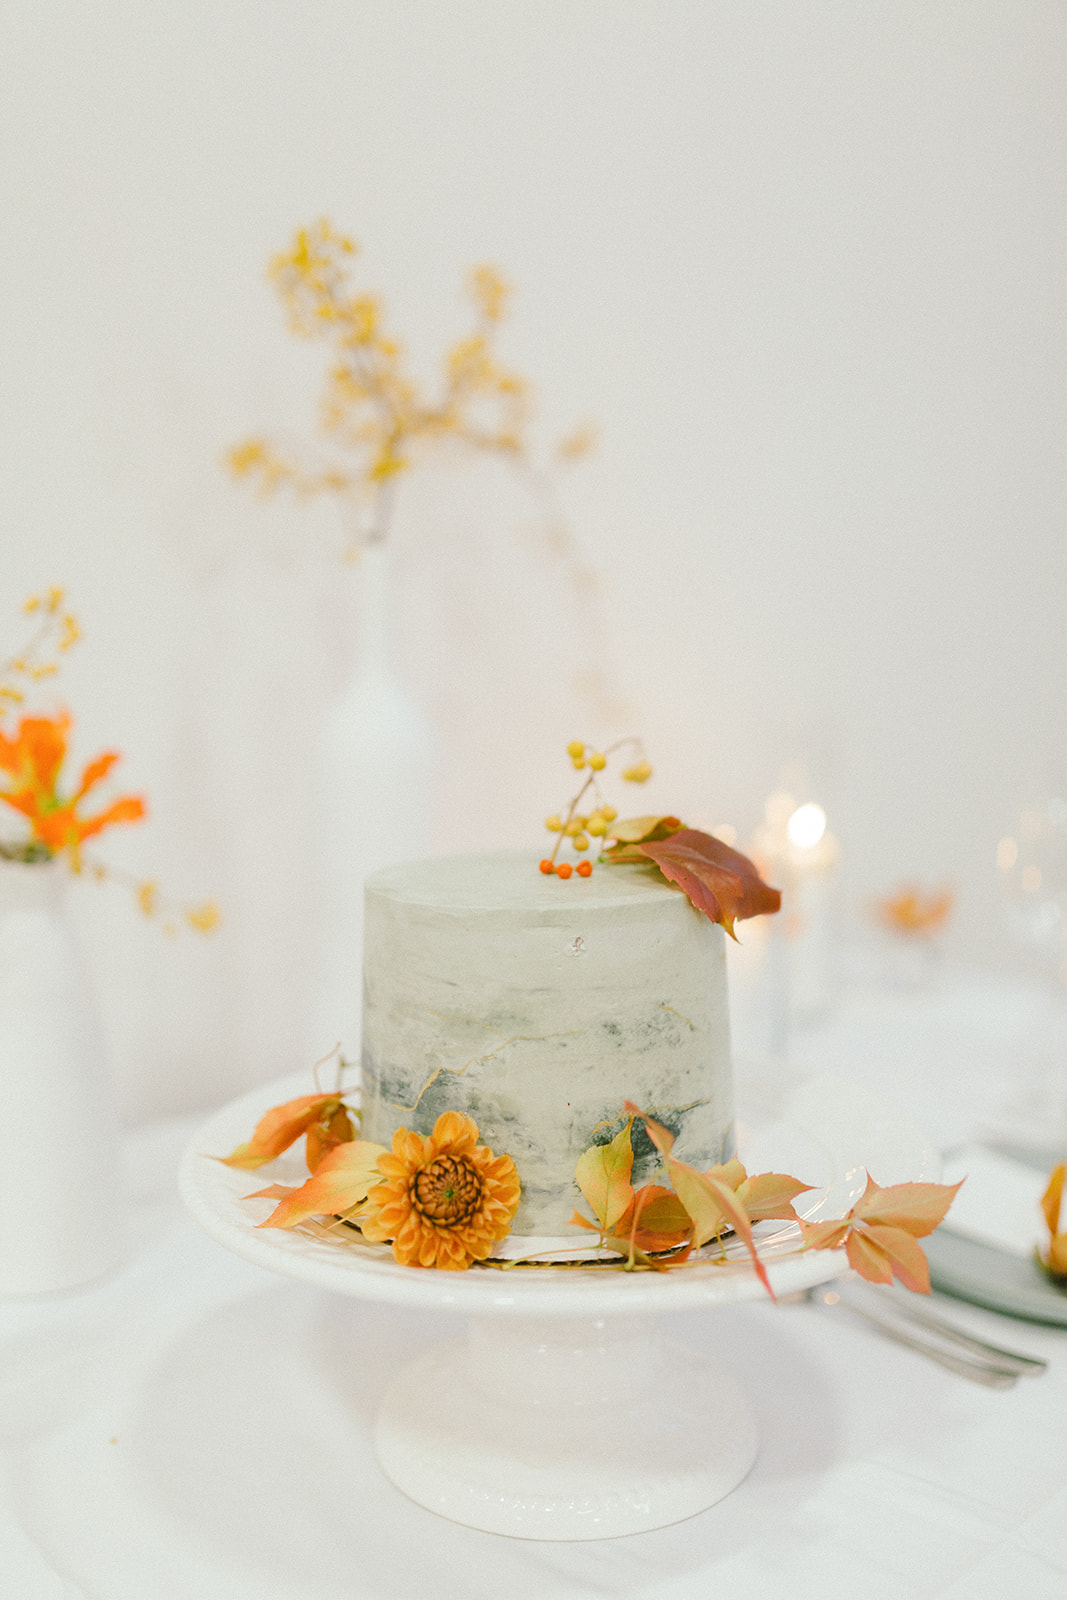 Modern Art Wedding Cake with Orange and Yellow Flowers by Jenny Bakes in Vancouver